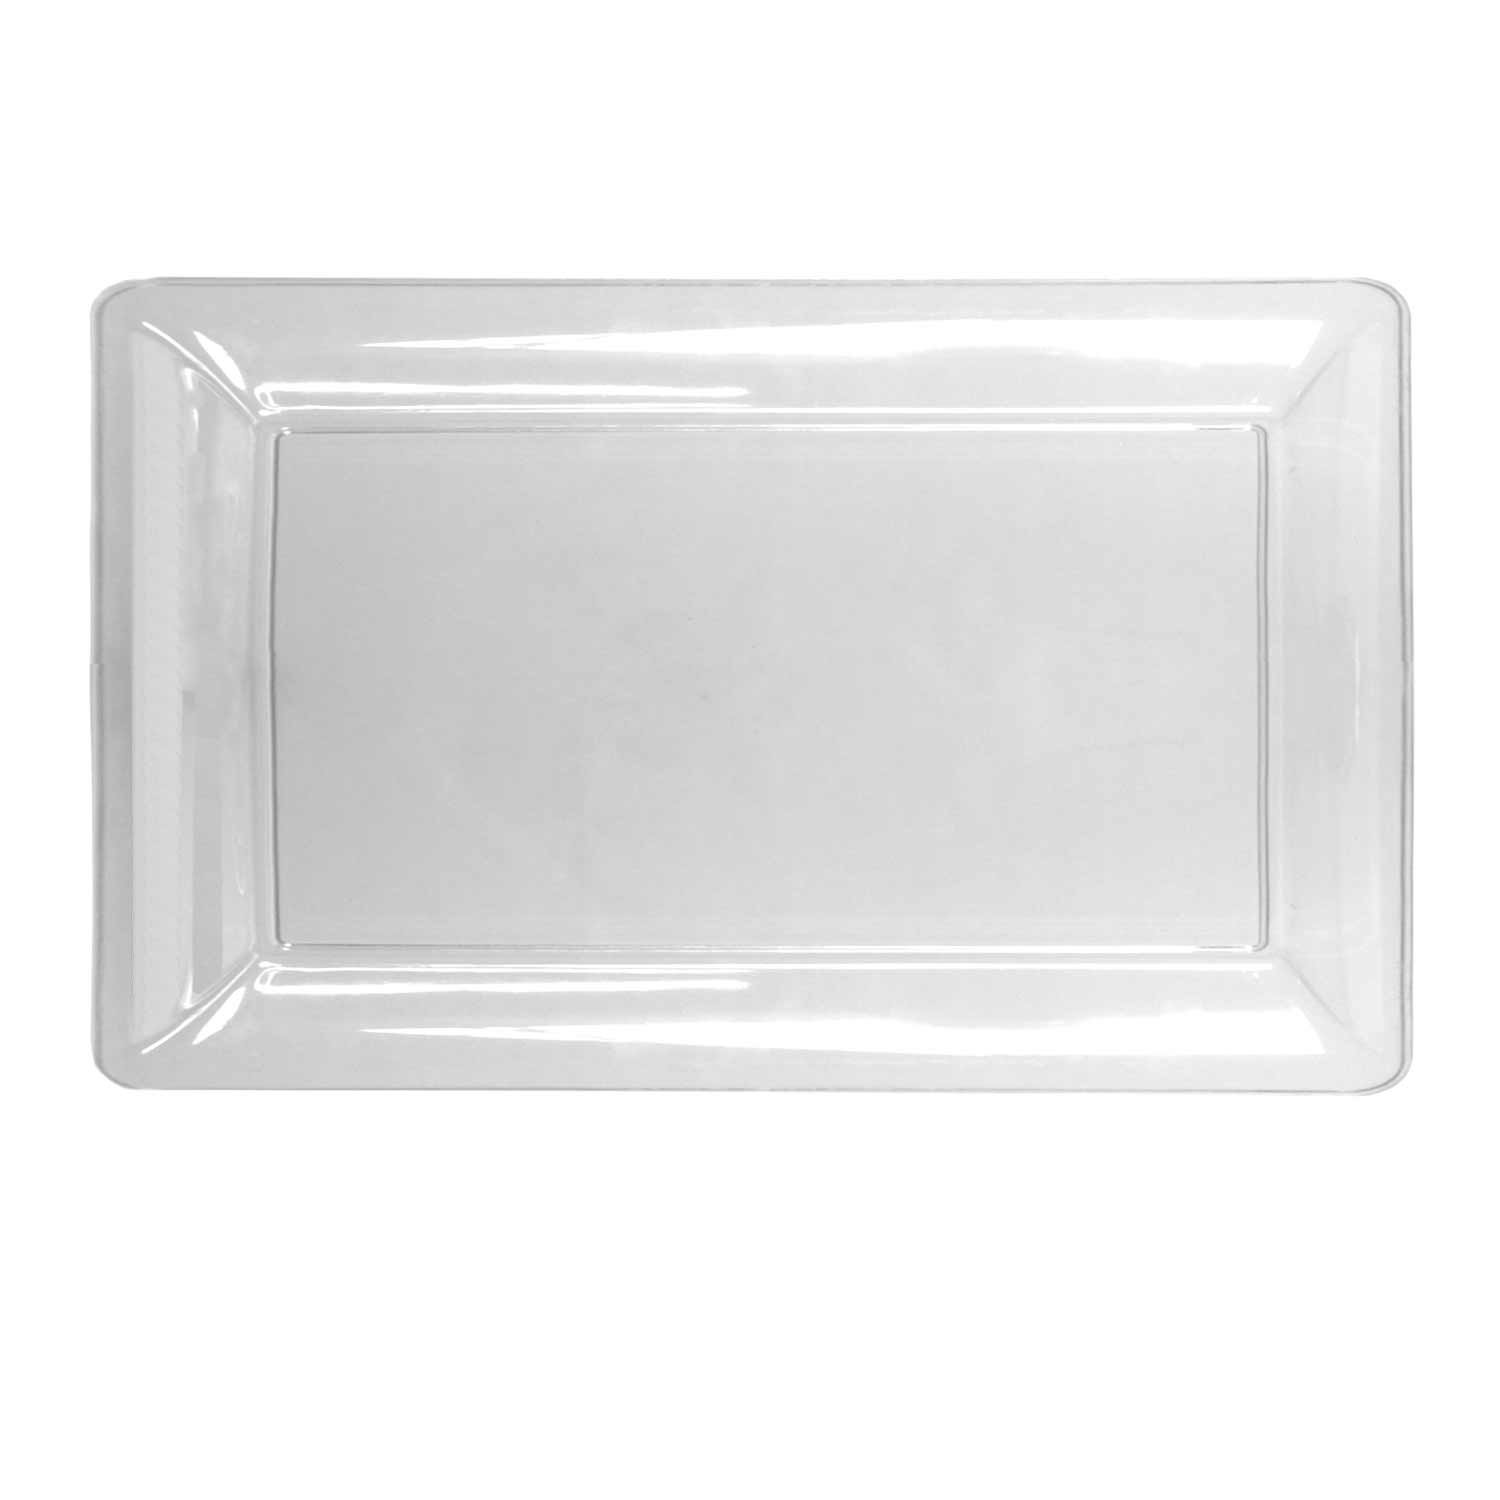 Party Essentials N121821 Heavy Duty Plastic Rectangular Tray, 12'' Length x 18'' Width, Clear (Case of 6) by Party Essentials